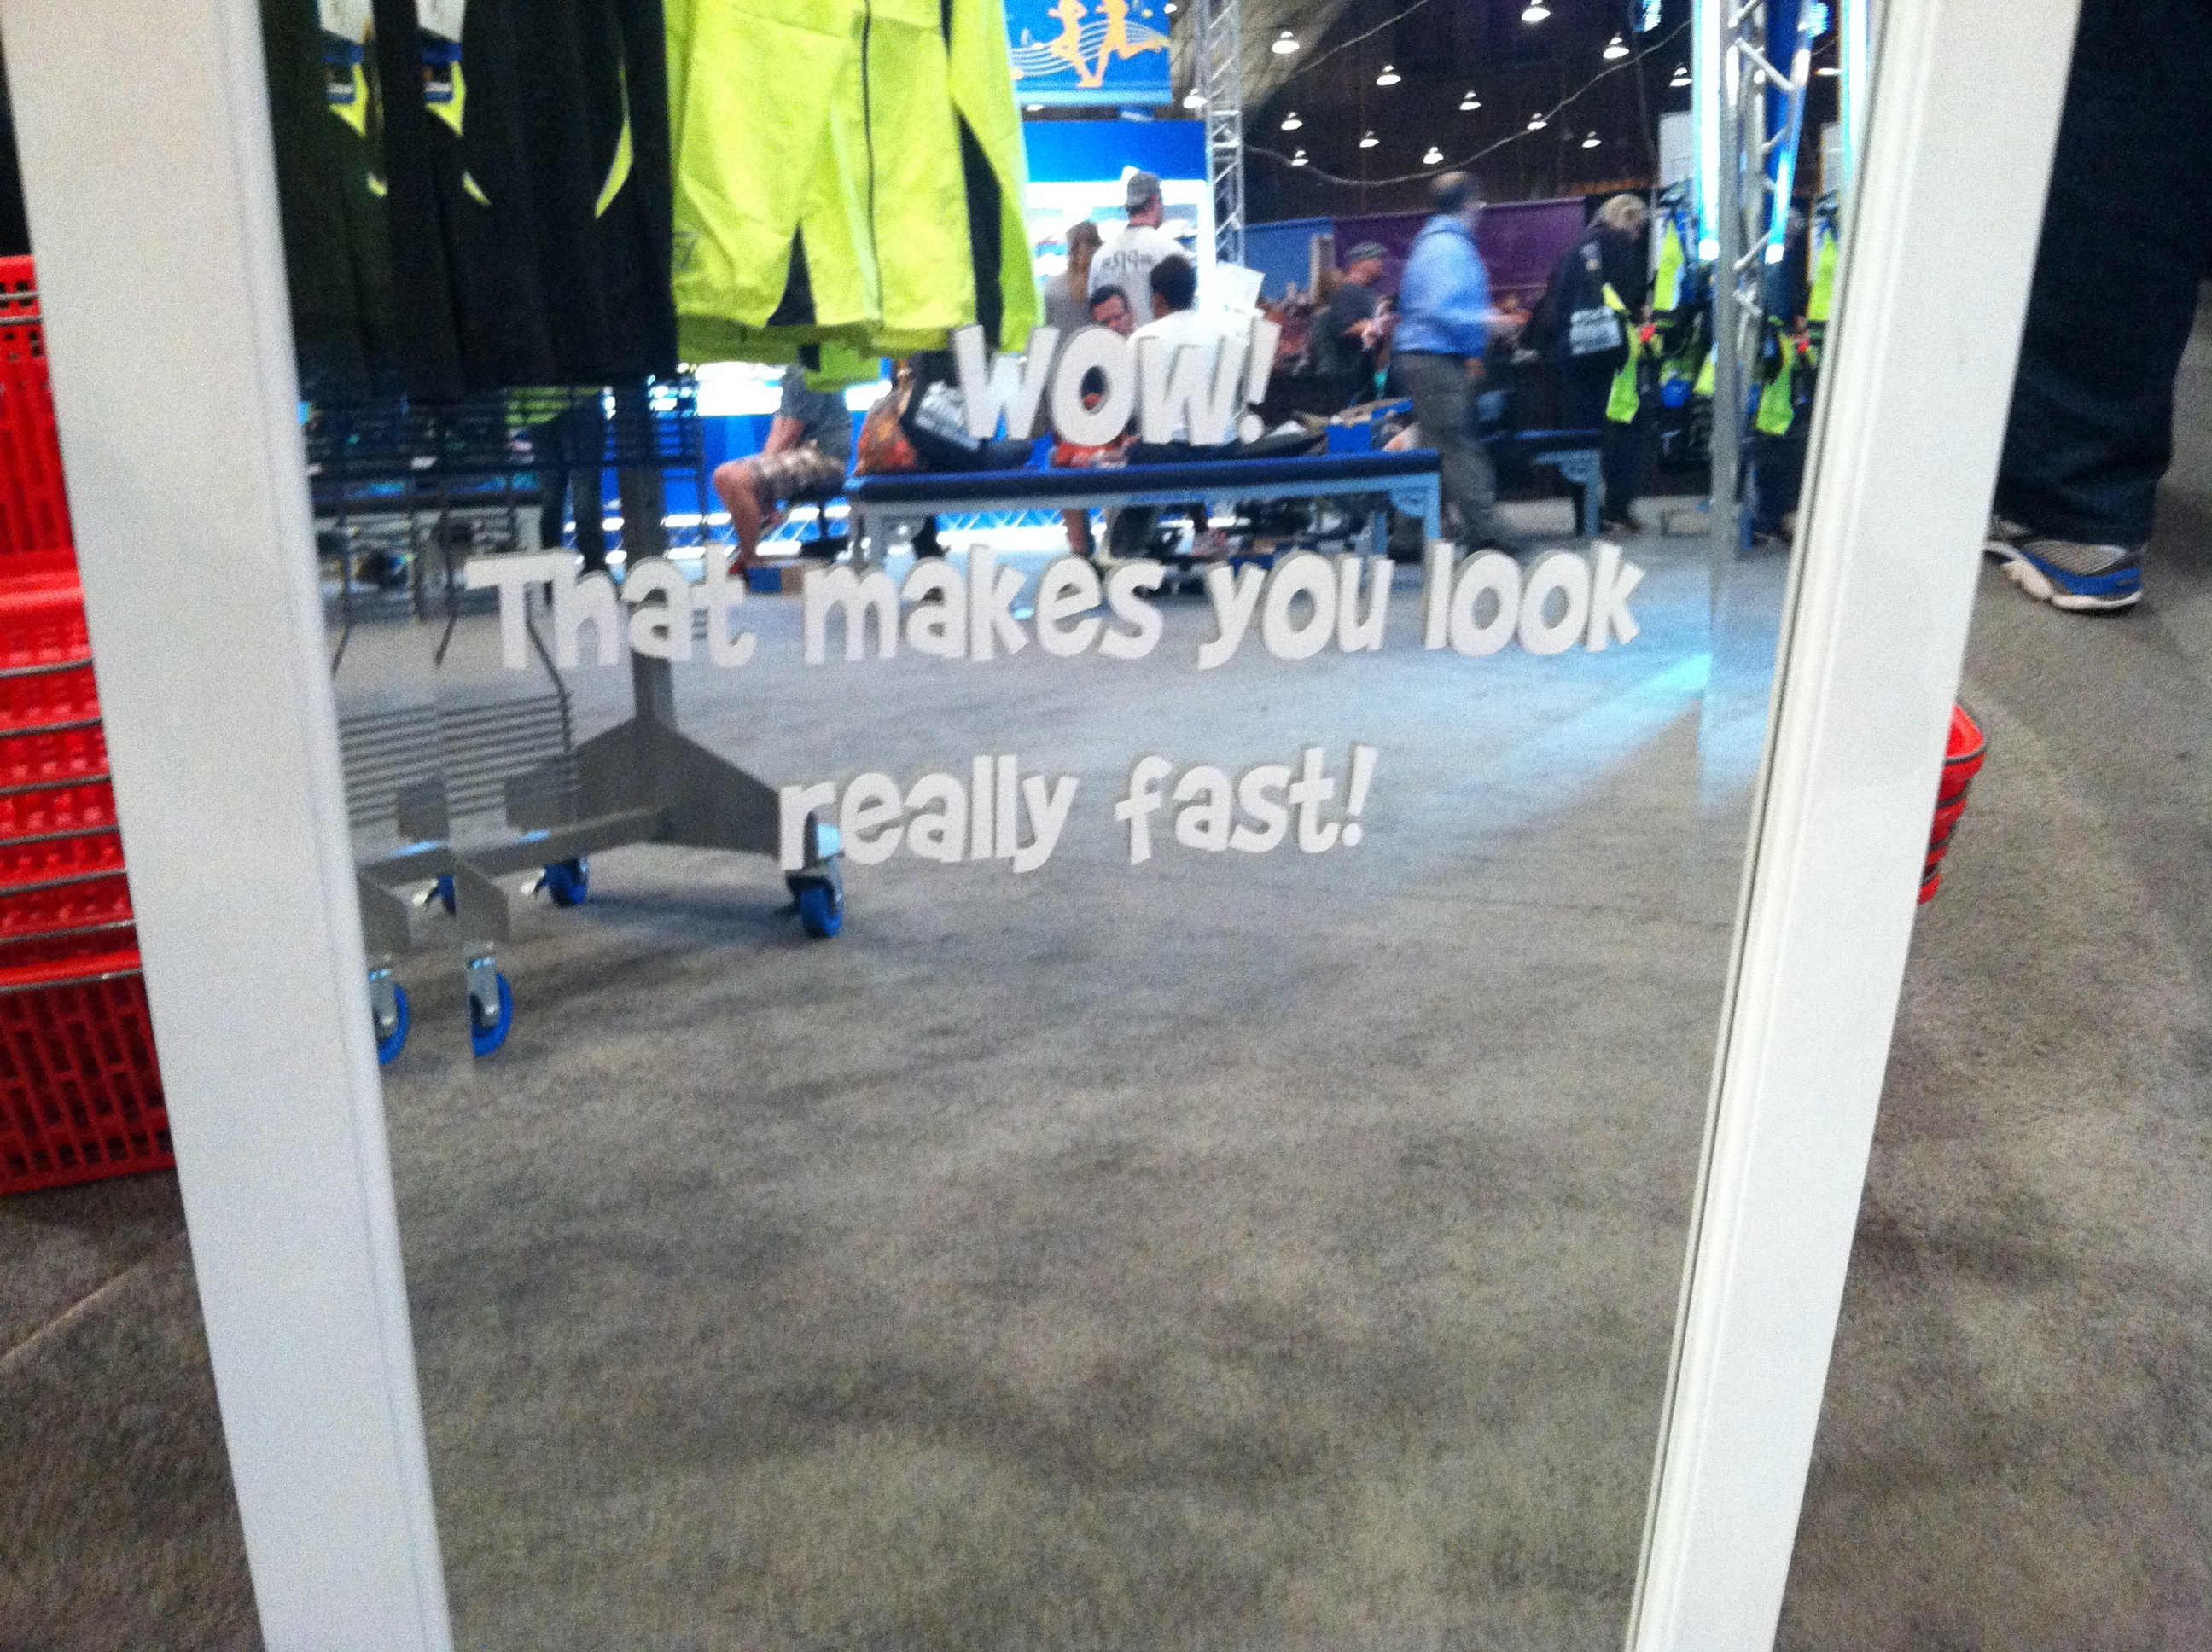 That makes you look really fast mirror at Brooks area Rock 'n' Roll USA half marathon expo 2012